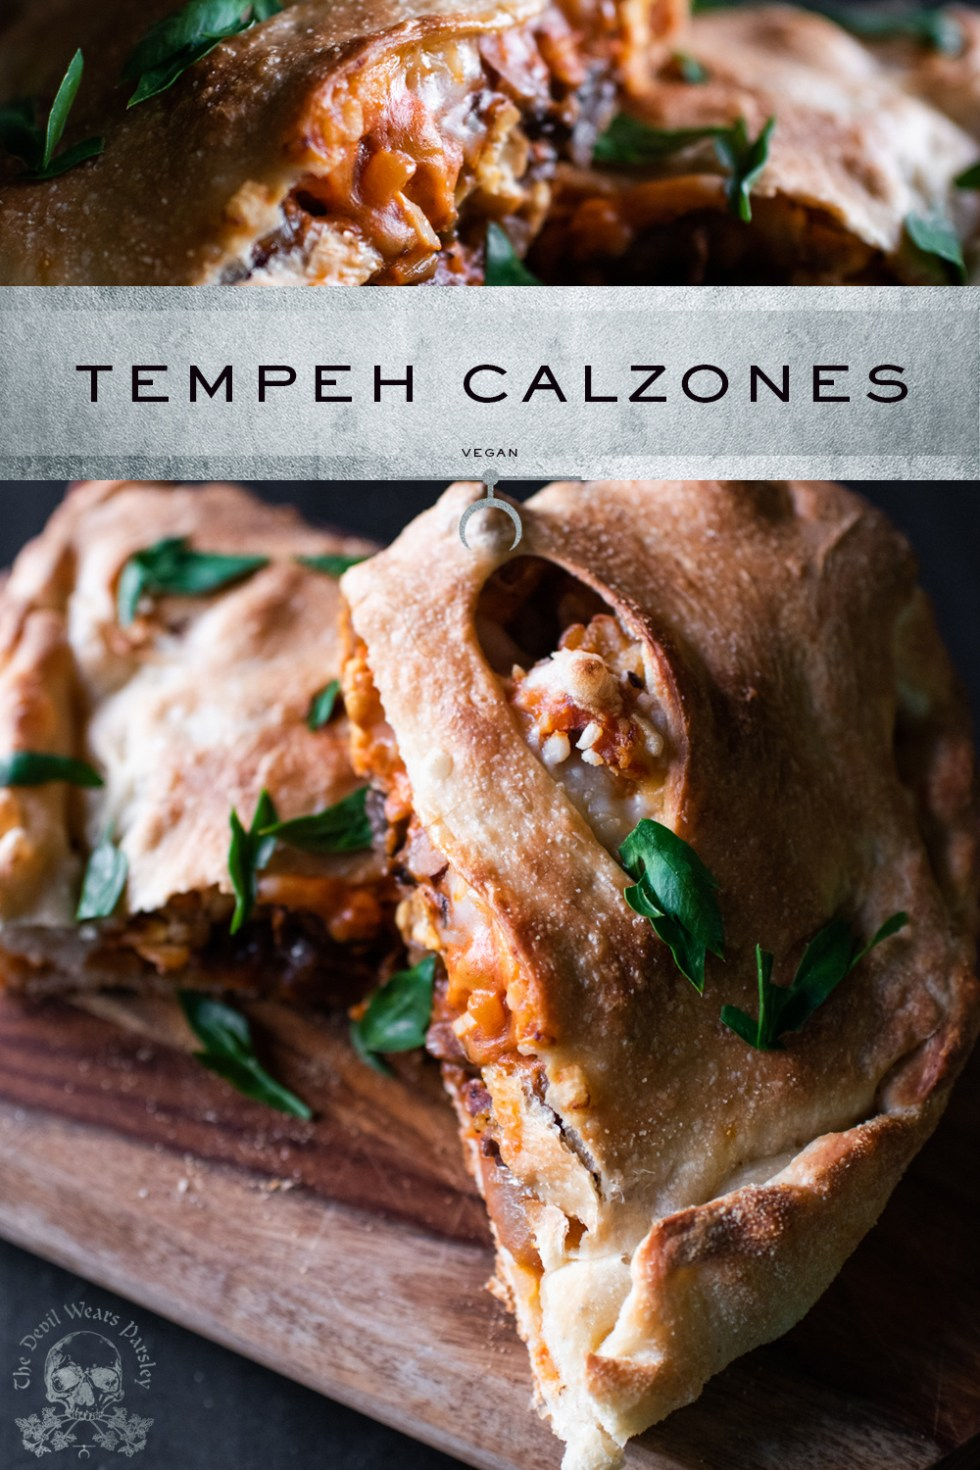 Forget pizza.  Calzones are where it's at!